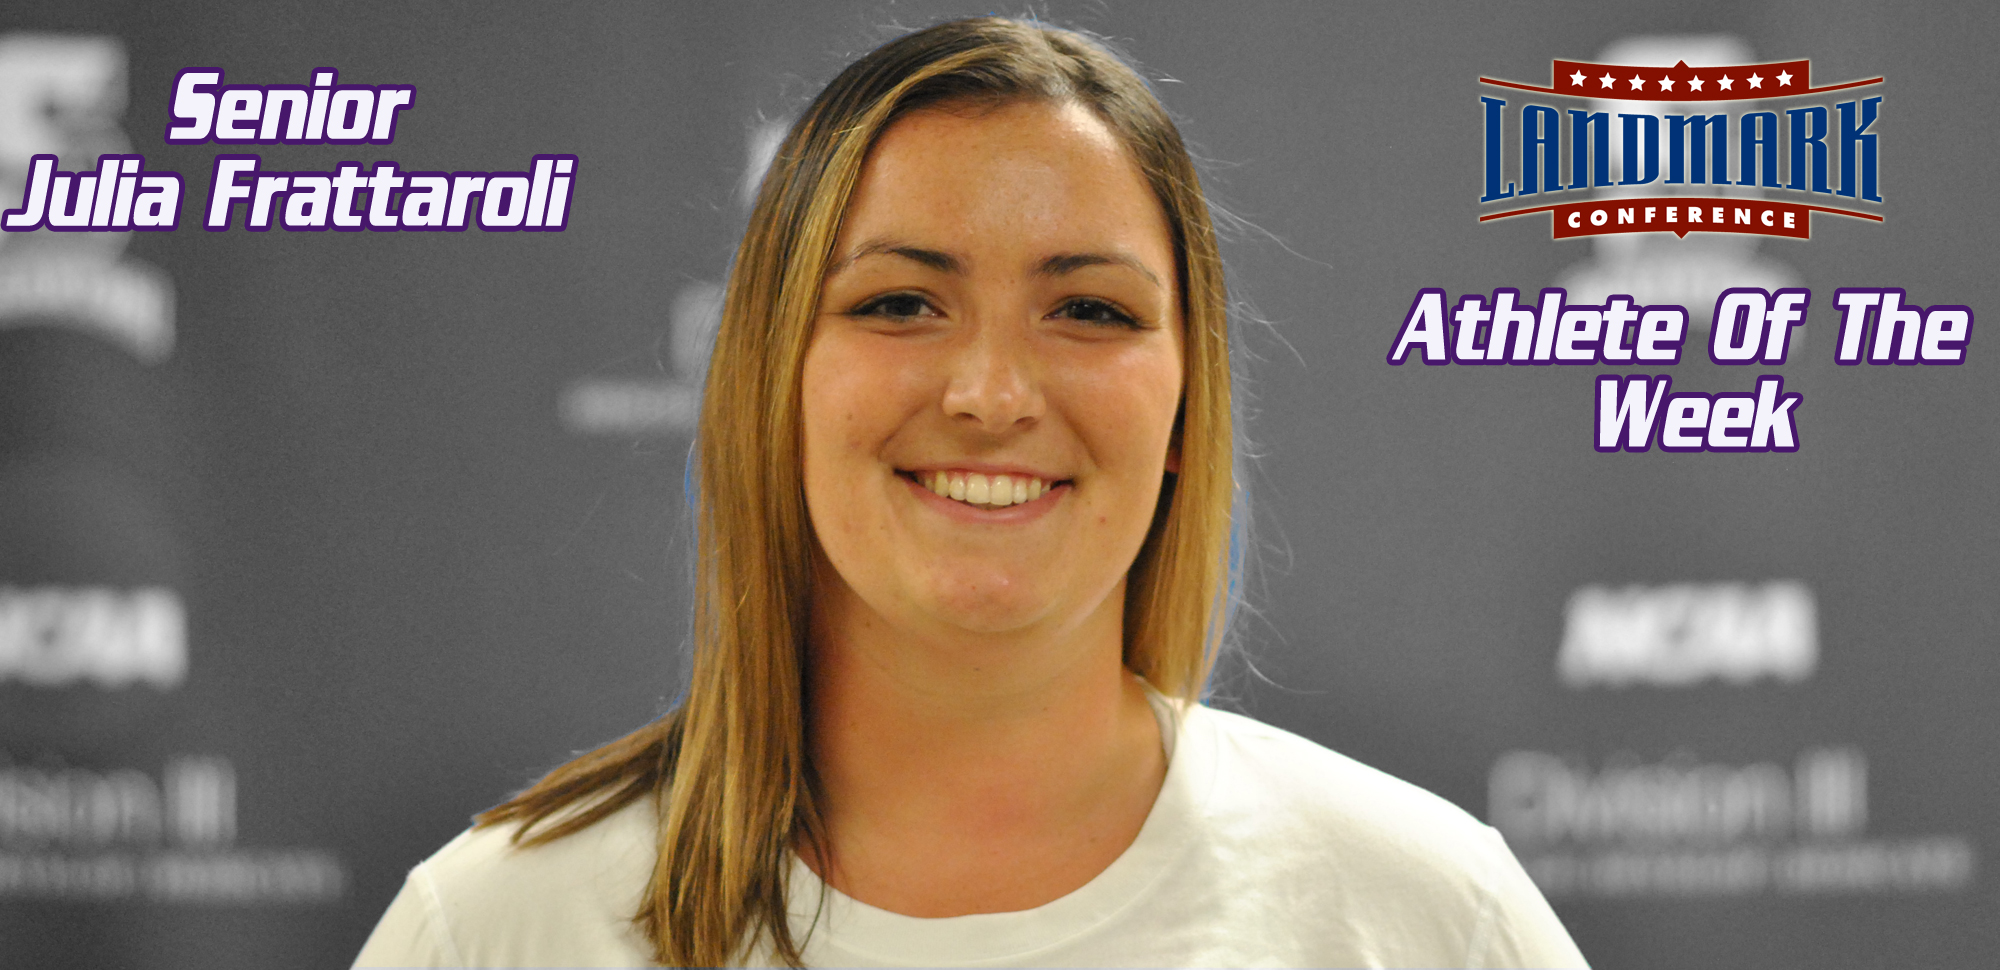 Julia Frattaroli Nabs Landmark Conference Women's Tennis Athlete of the Week Honors